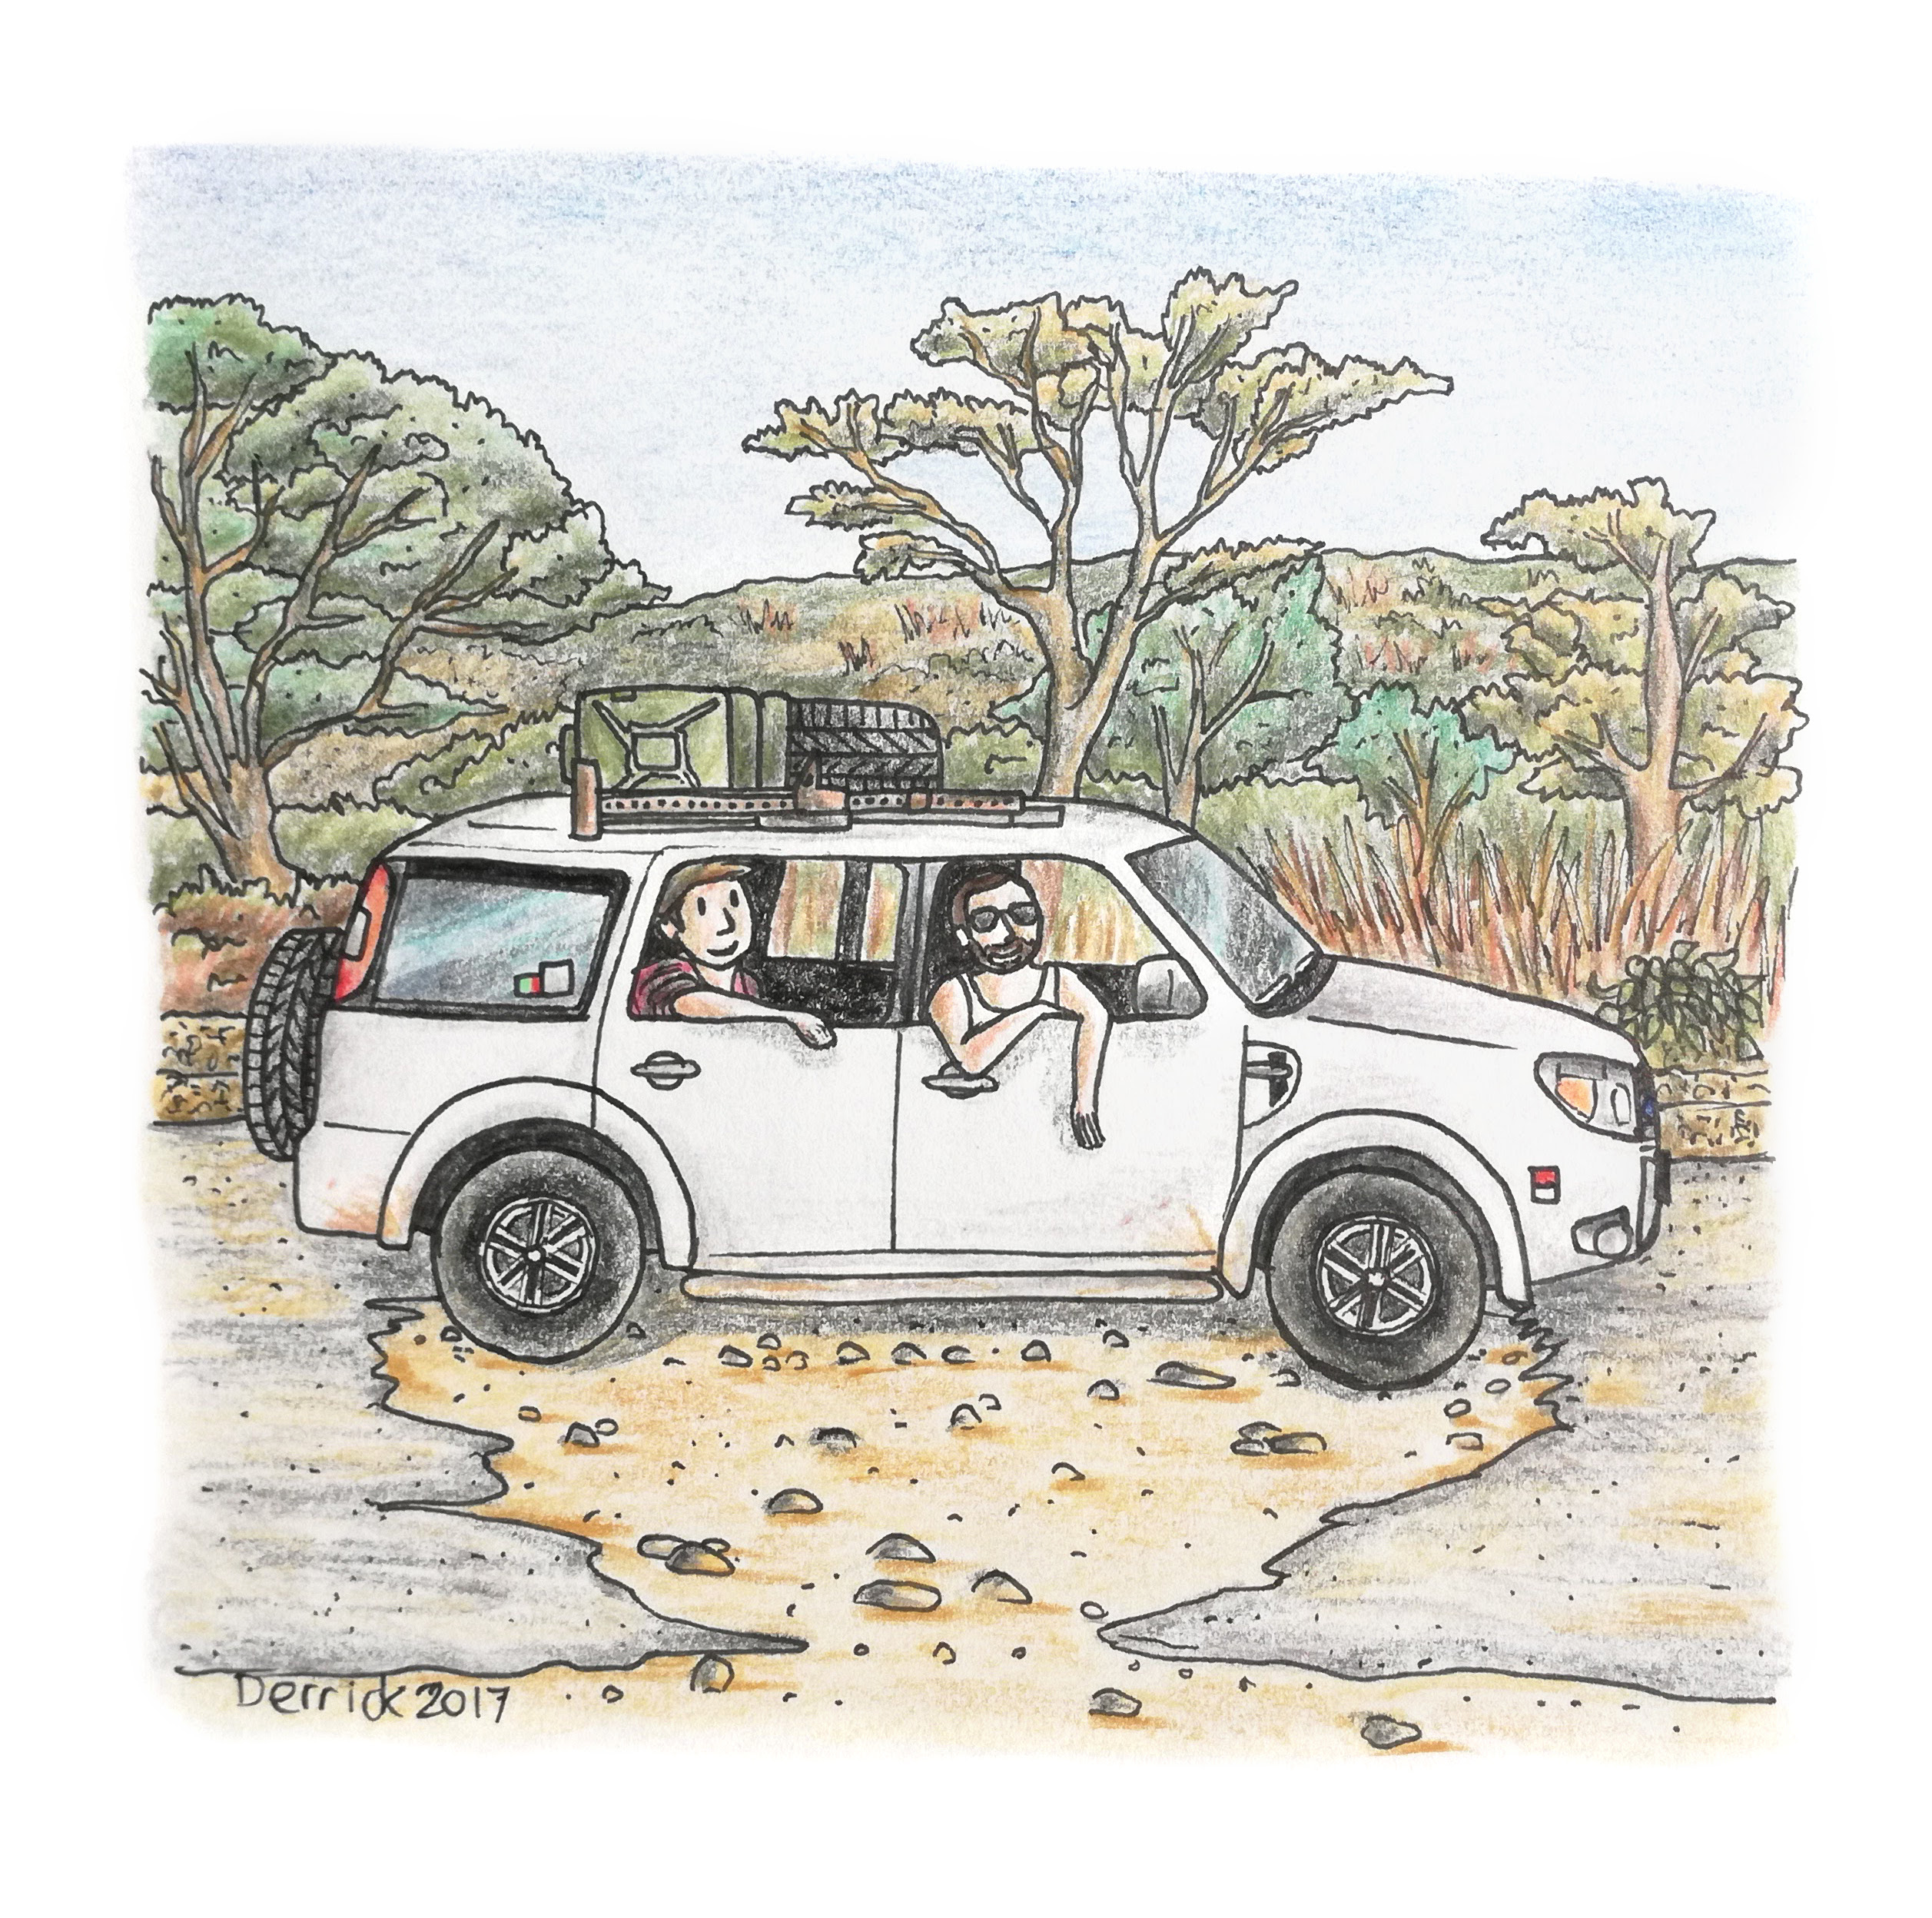 Sketch of a car stuck in a massive pothole in zambia